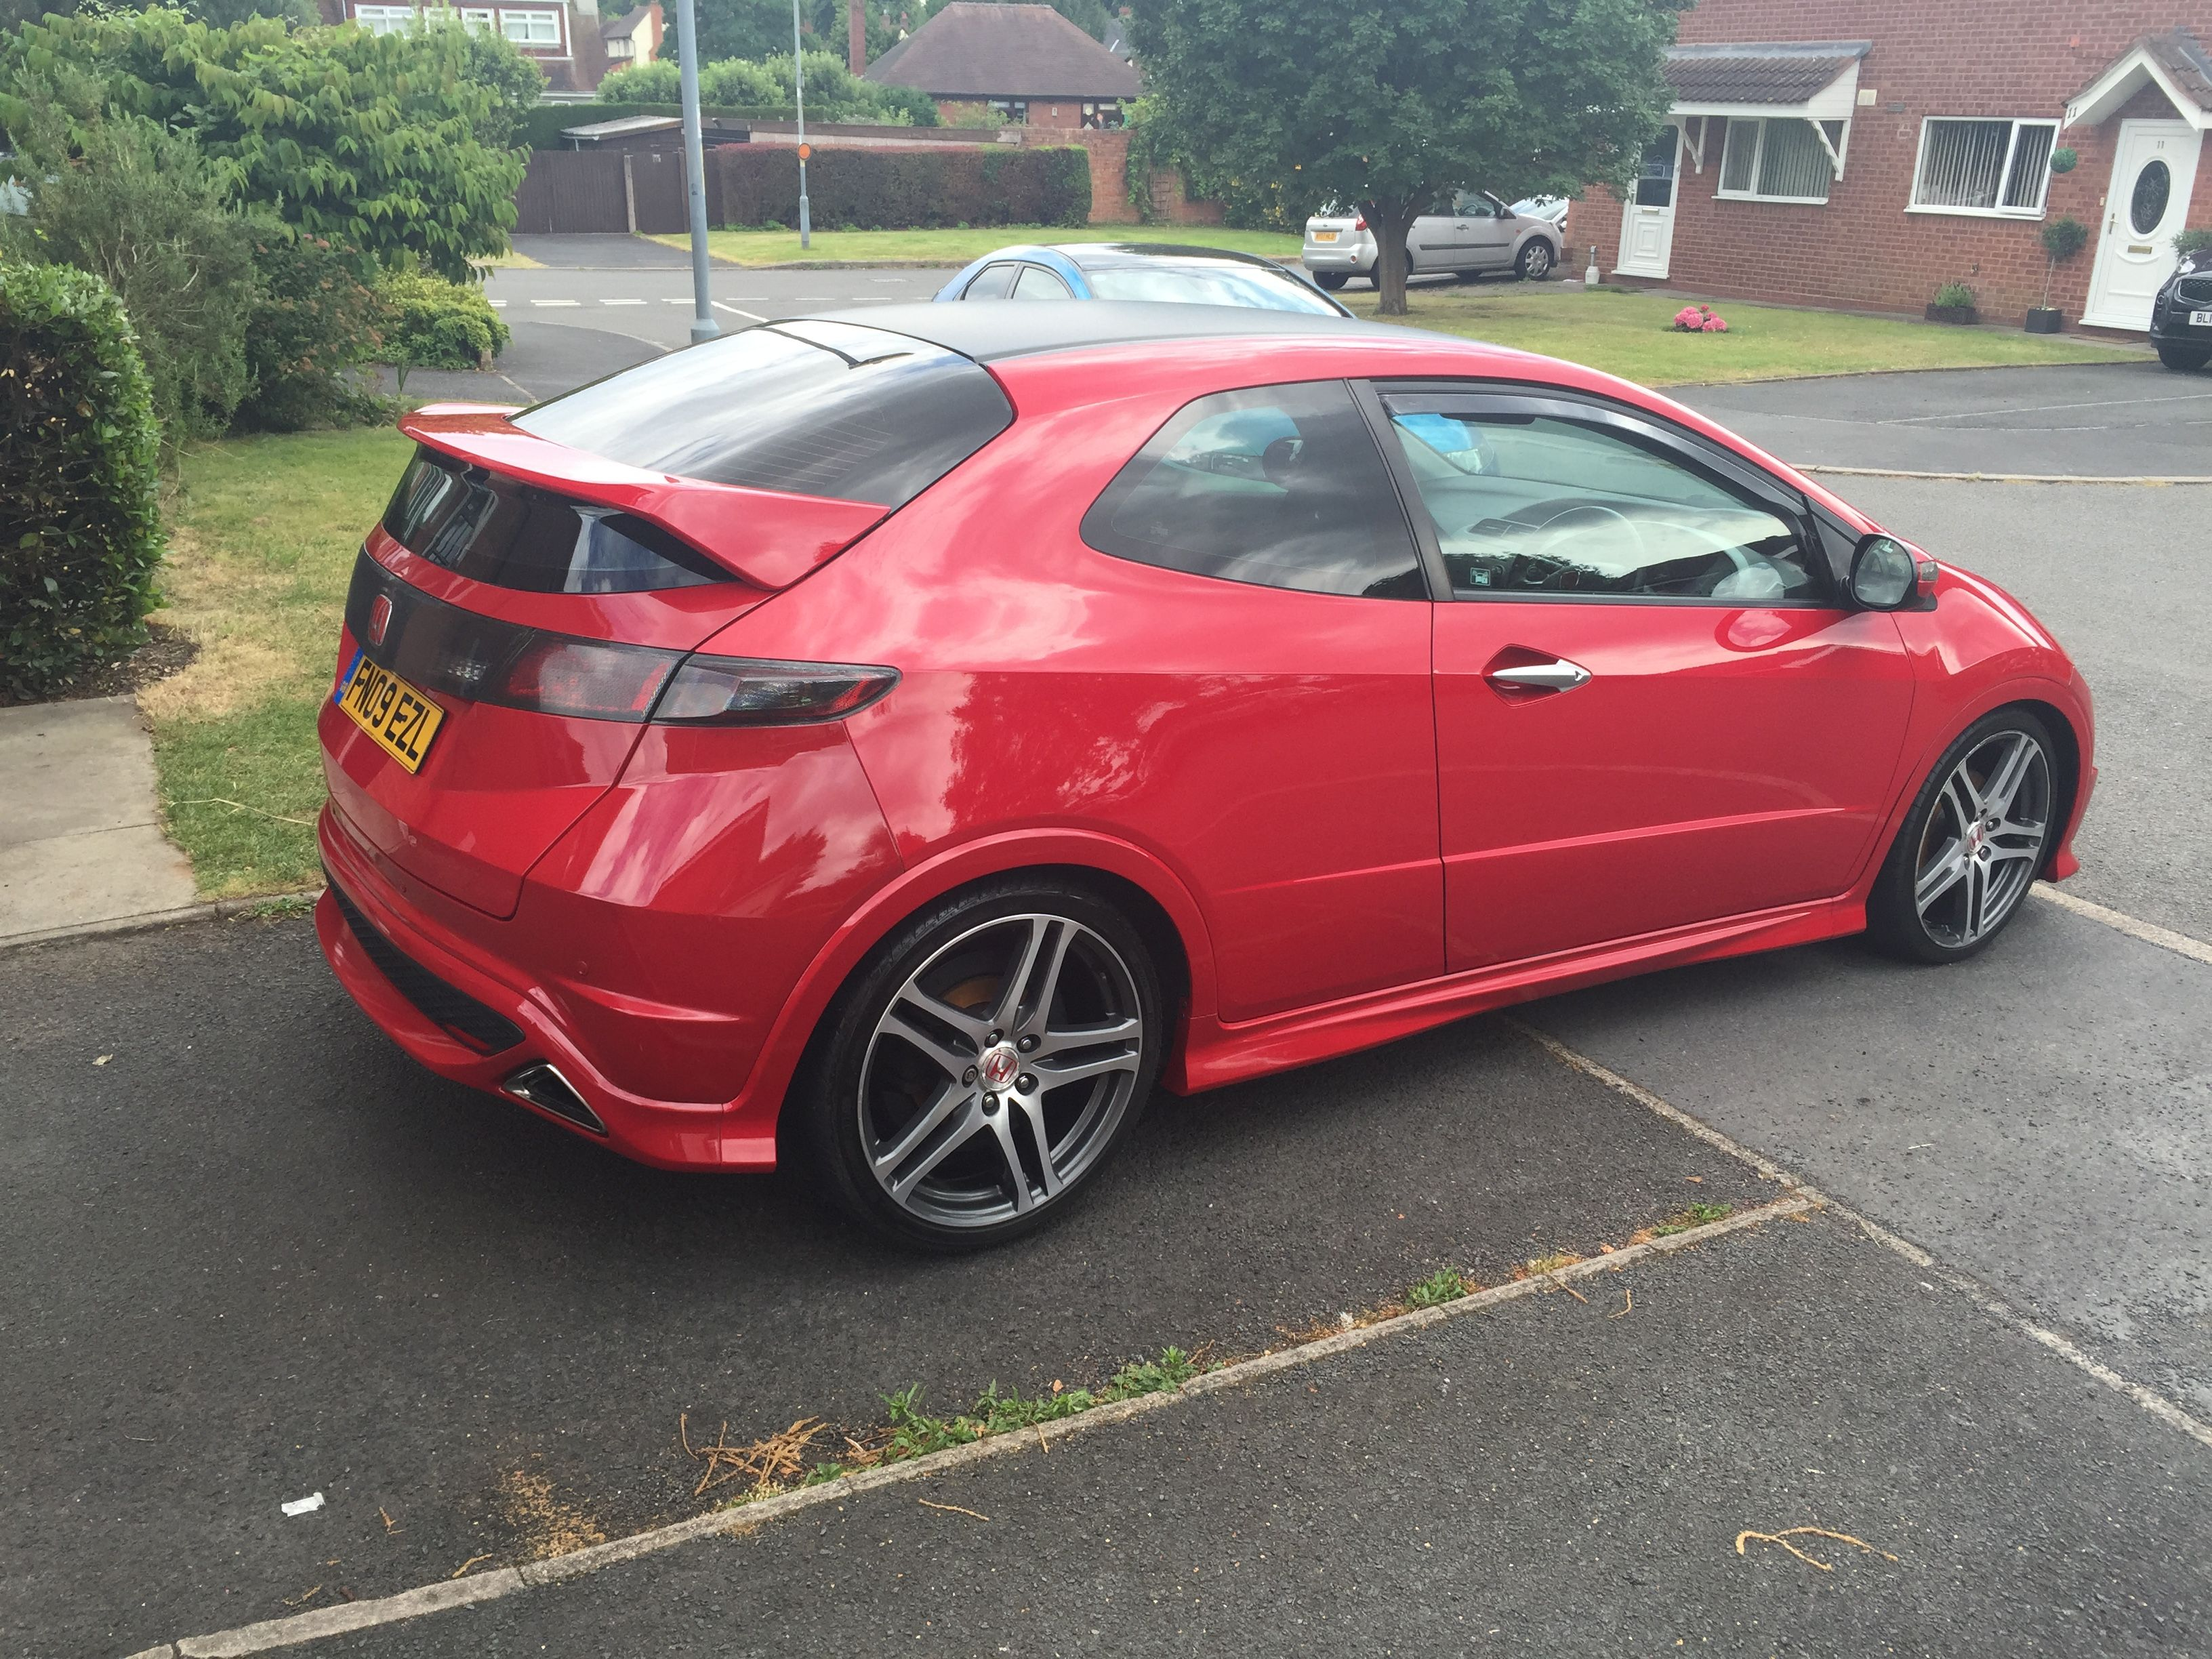 Red Window Tint >> Honda Civic Type R Milano Red With Suntek Carbon 5 Window